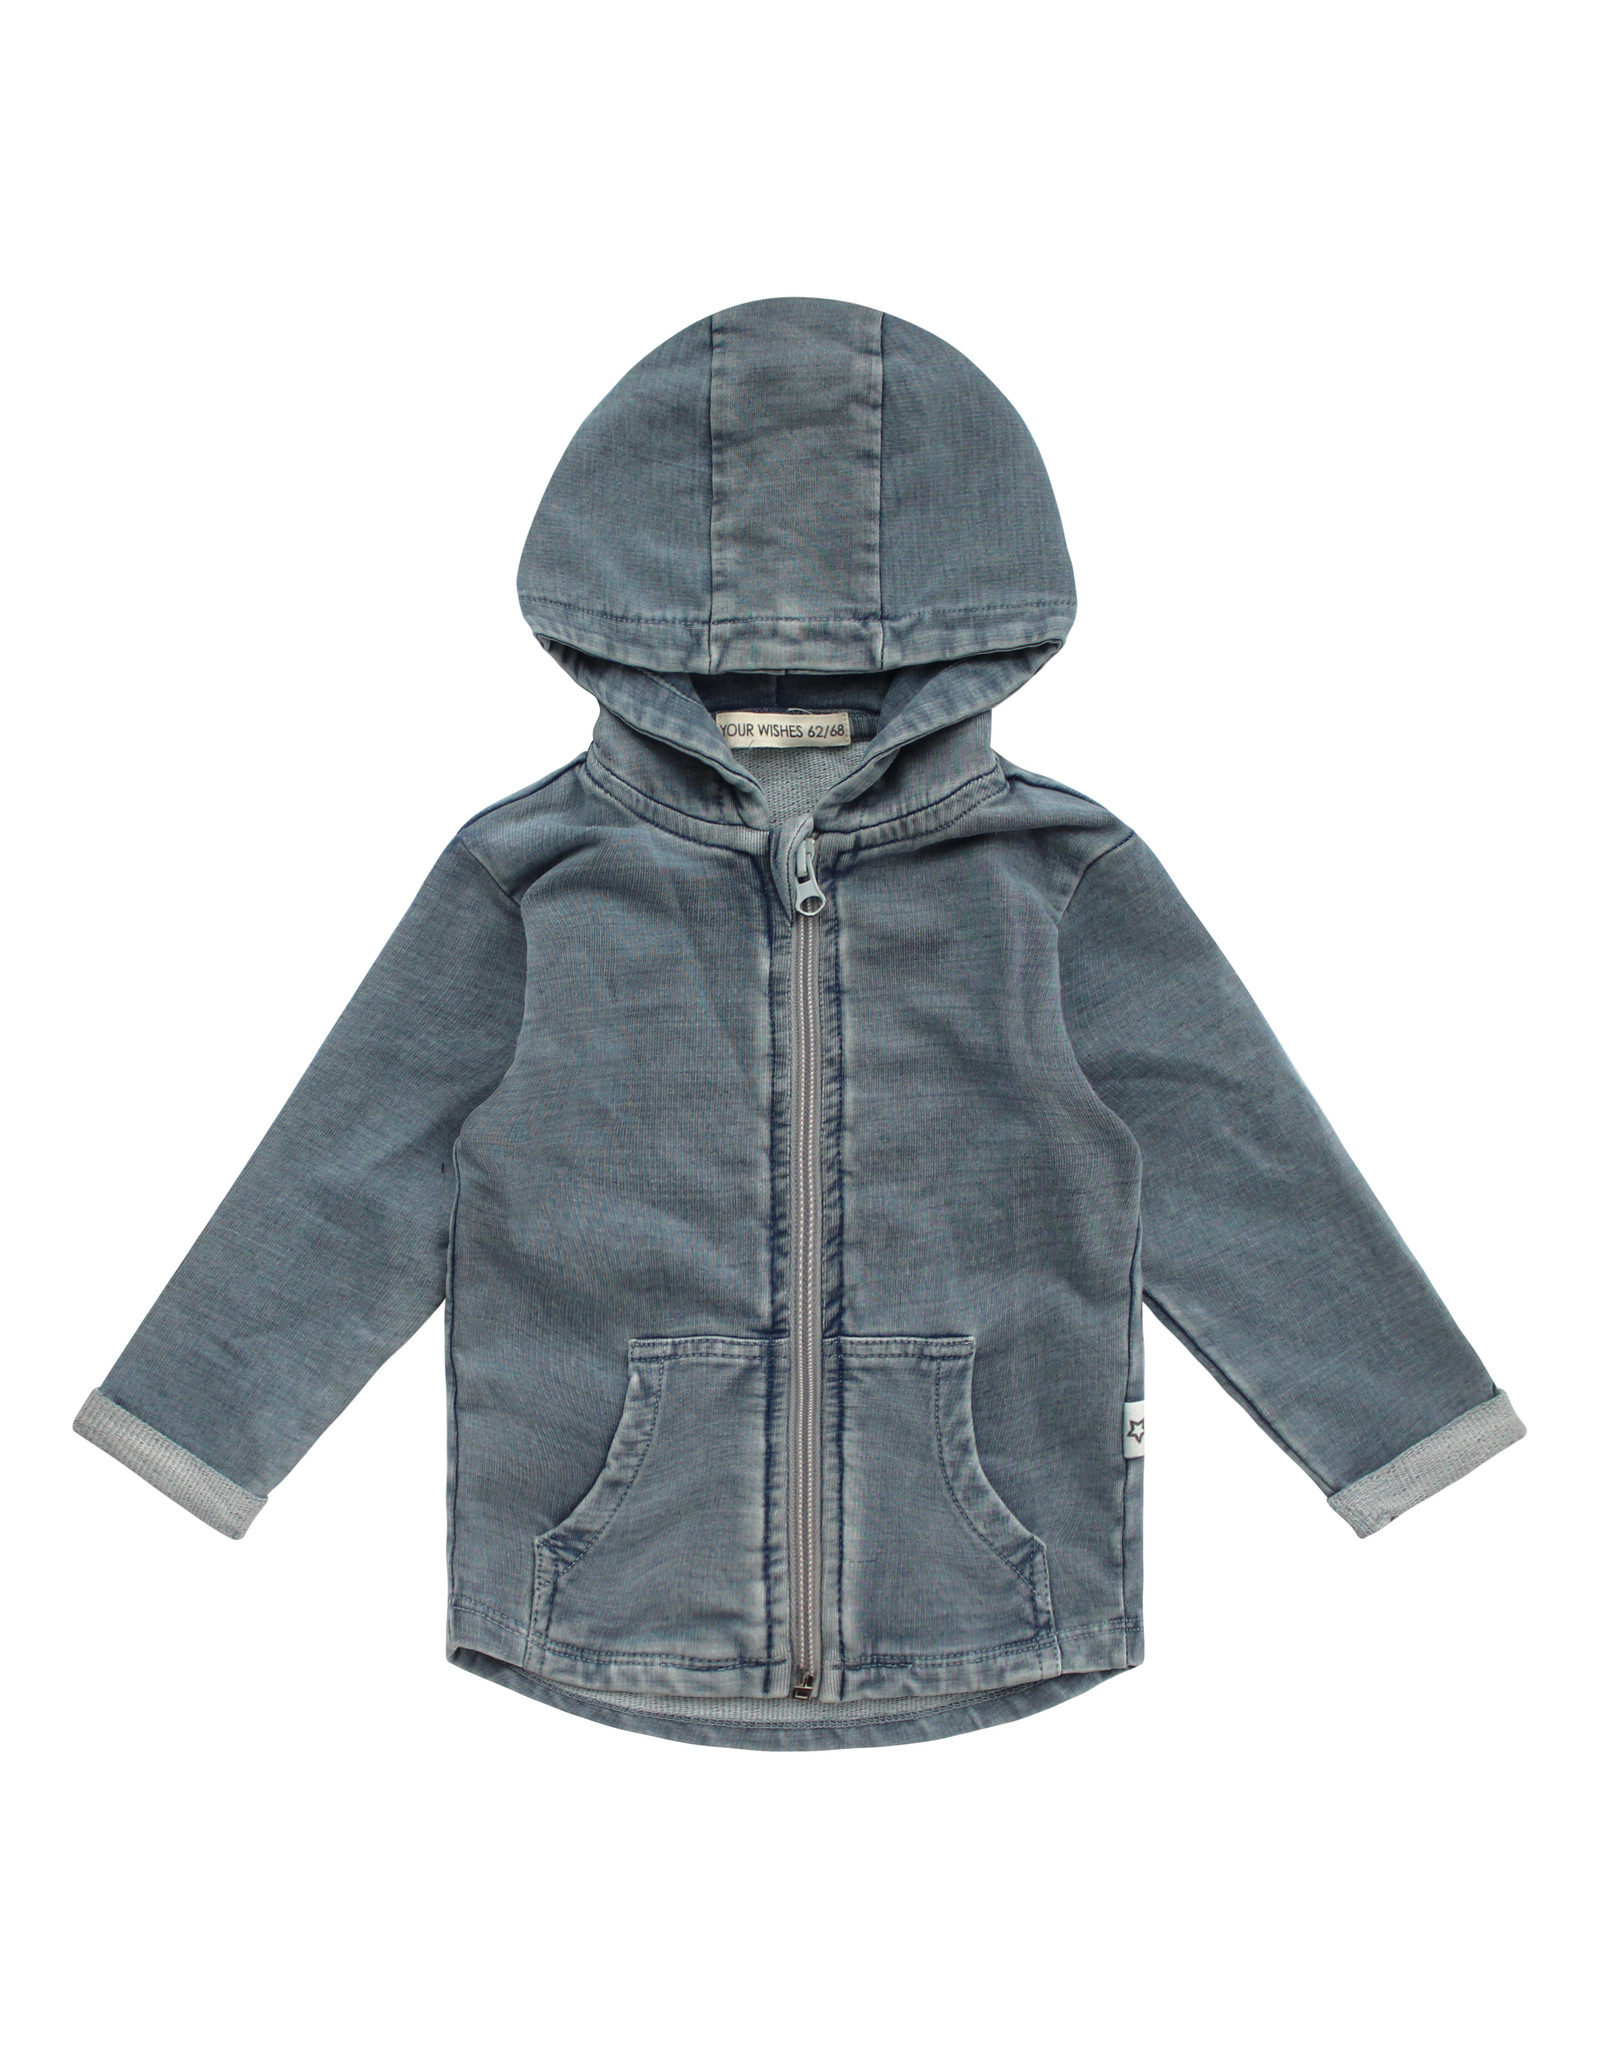 Your Wishes Your Wishes Knitted Denim Zipper Pocket Cardigan